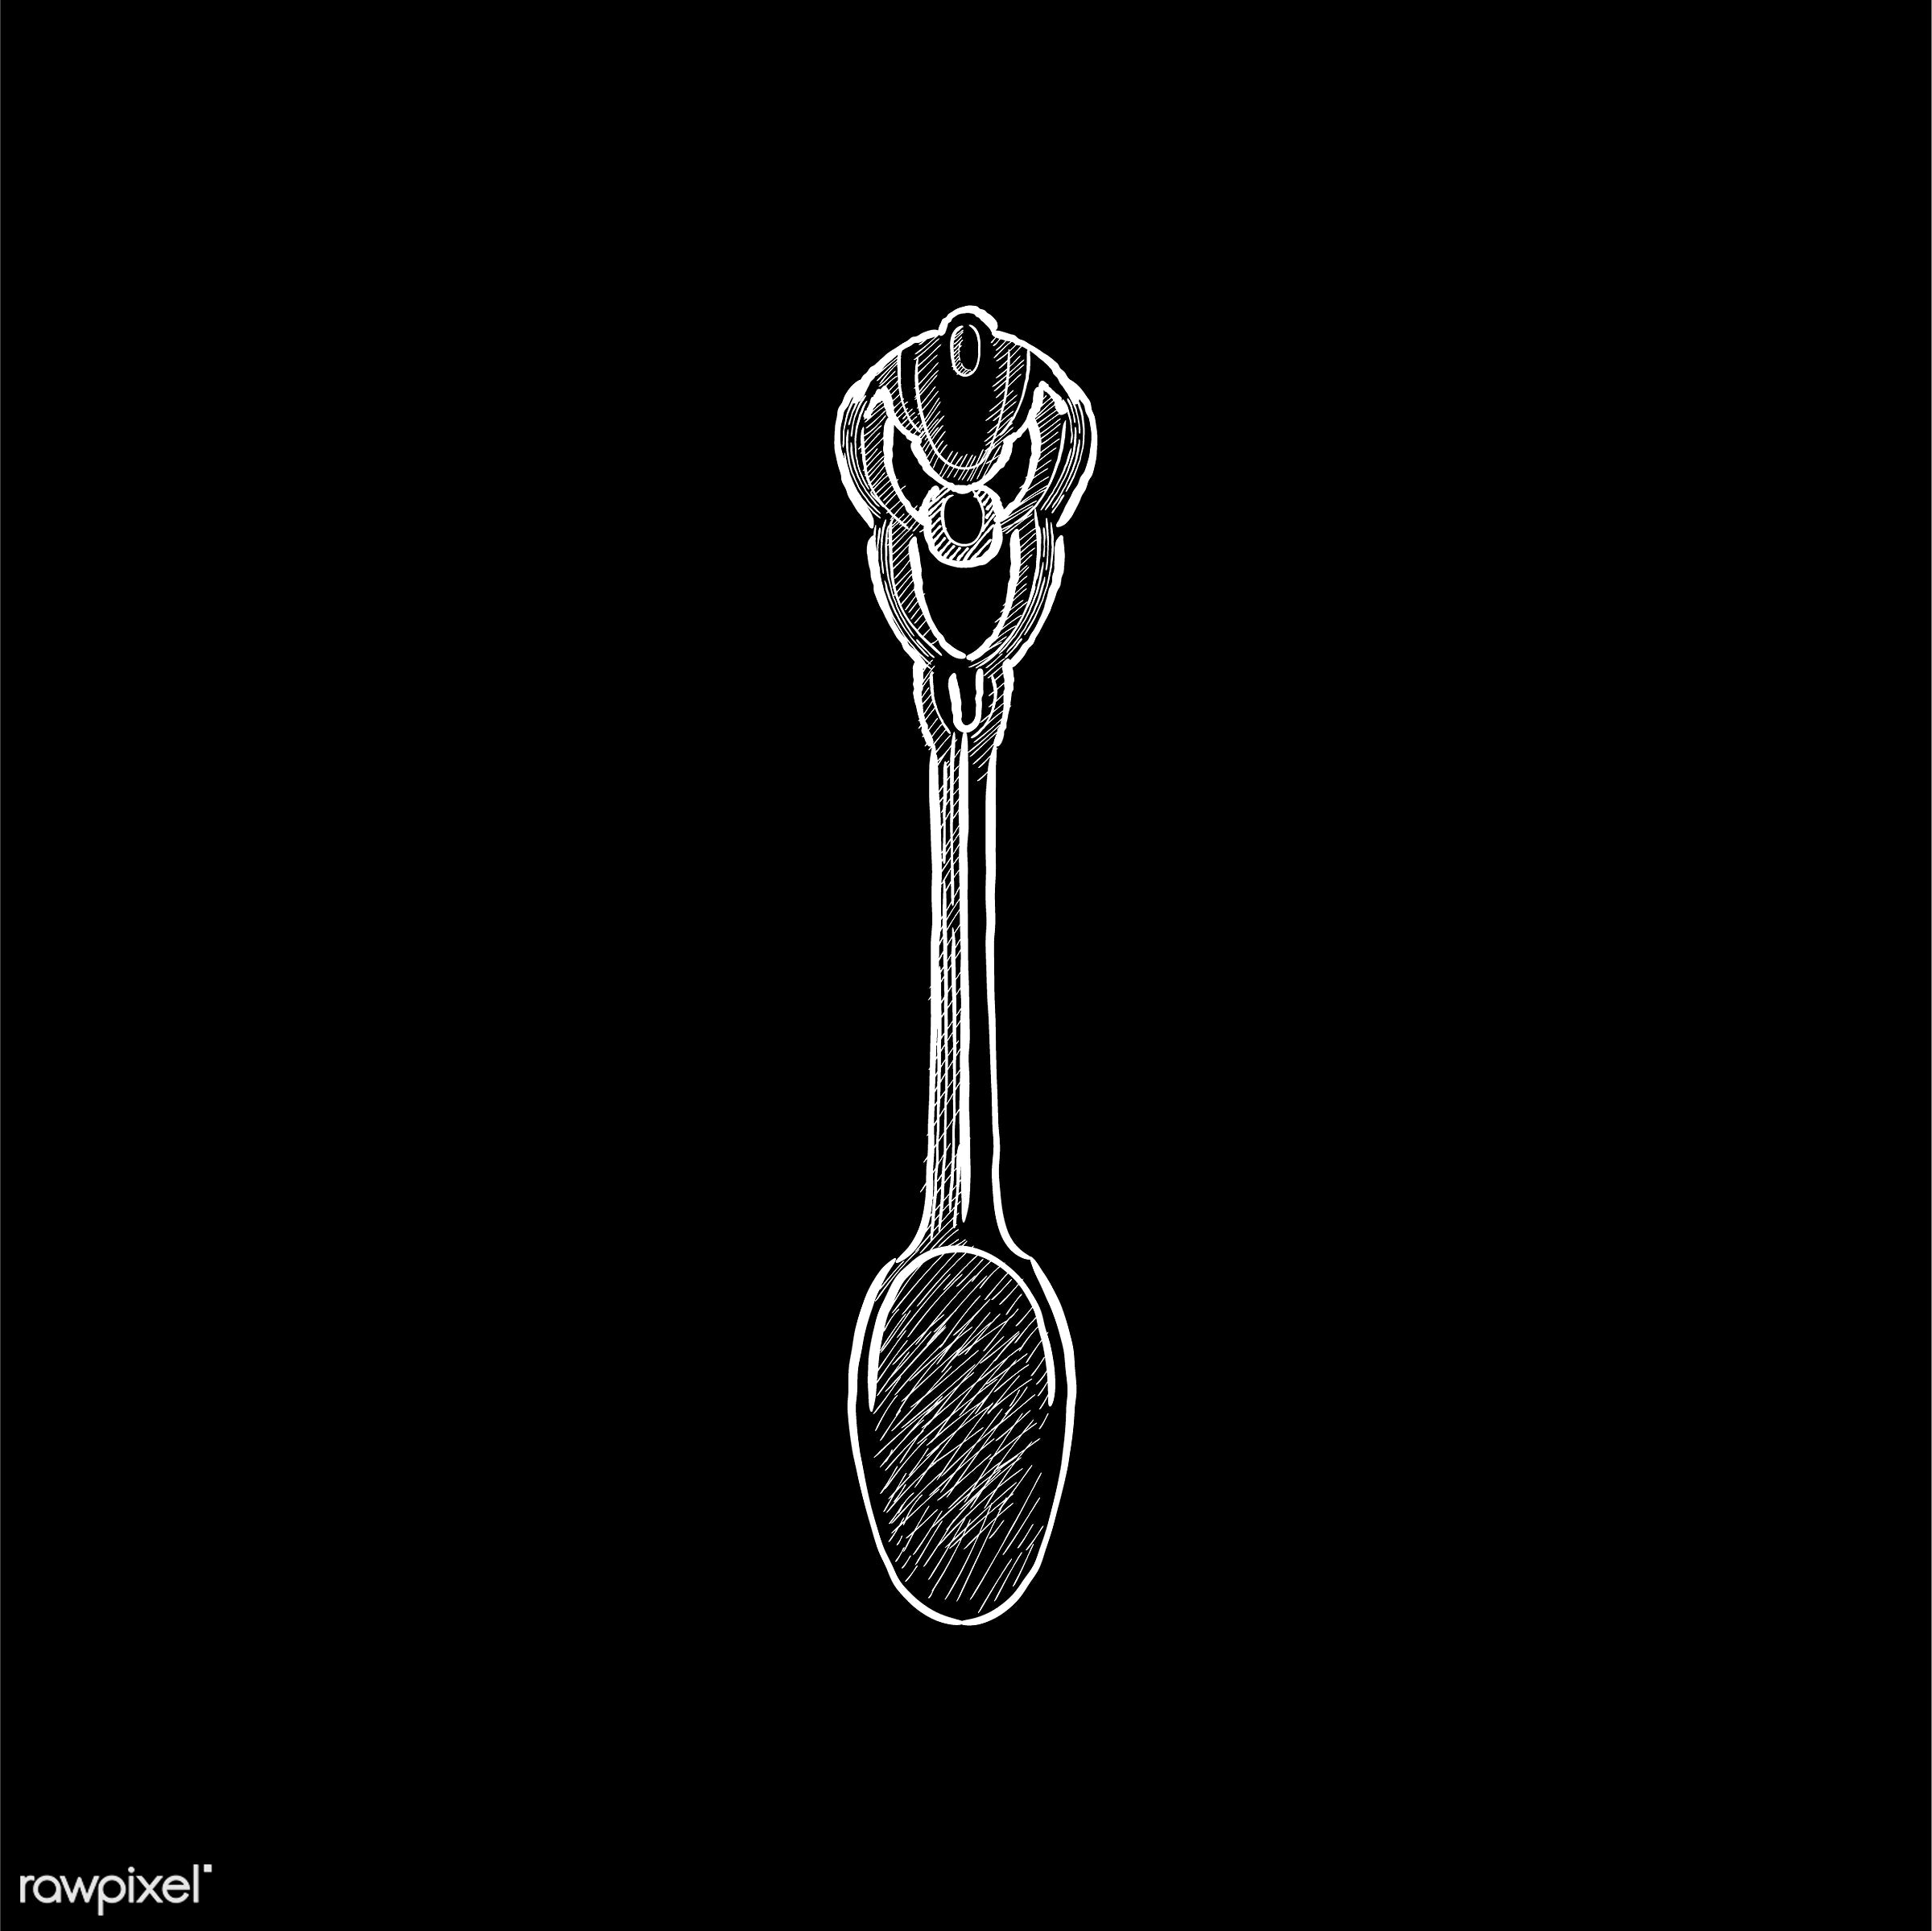 Vintage illustration of a spoon - antique, bake, bakery, black, design, drawing, equipment, graphic, hand drawing, hand...